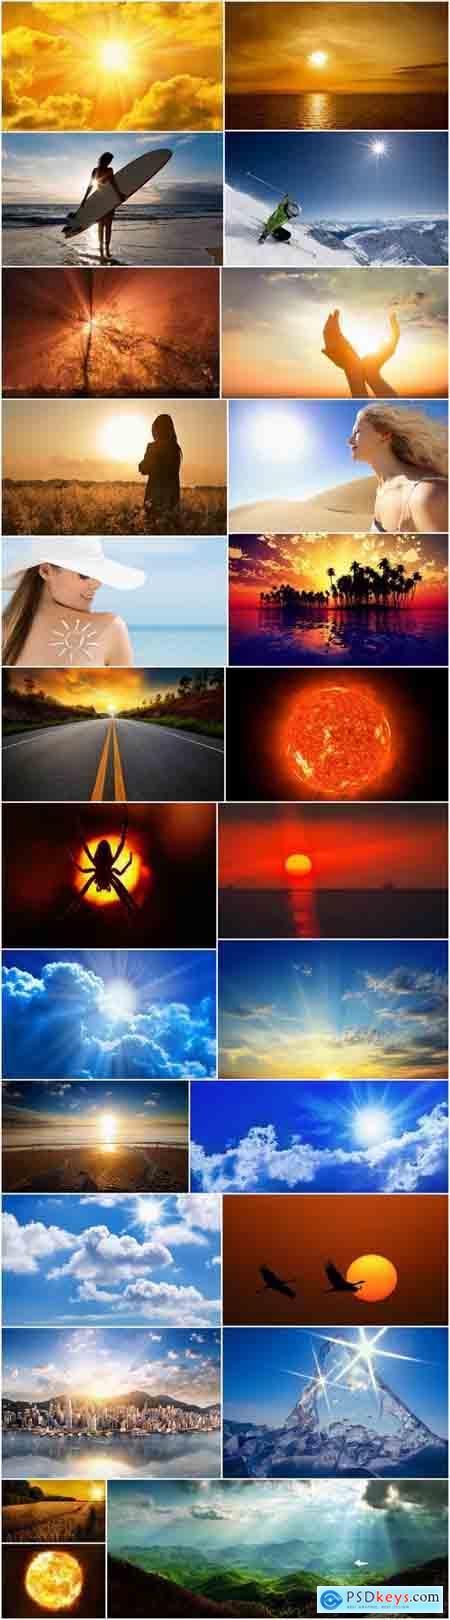 Sun nature sunset dawn landscape sea warmth 25 HQ Jpeg